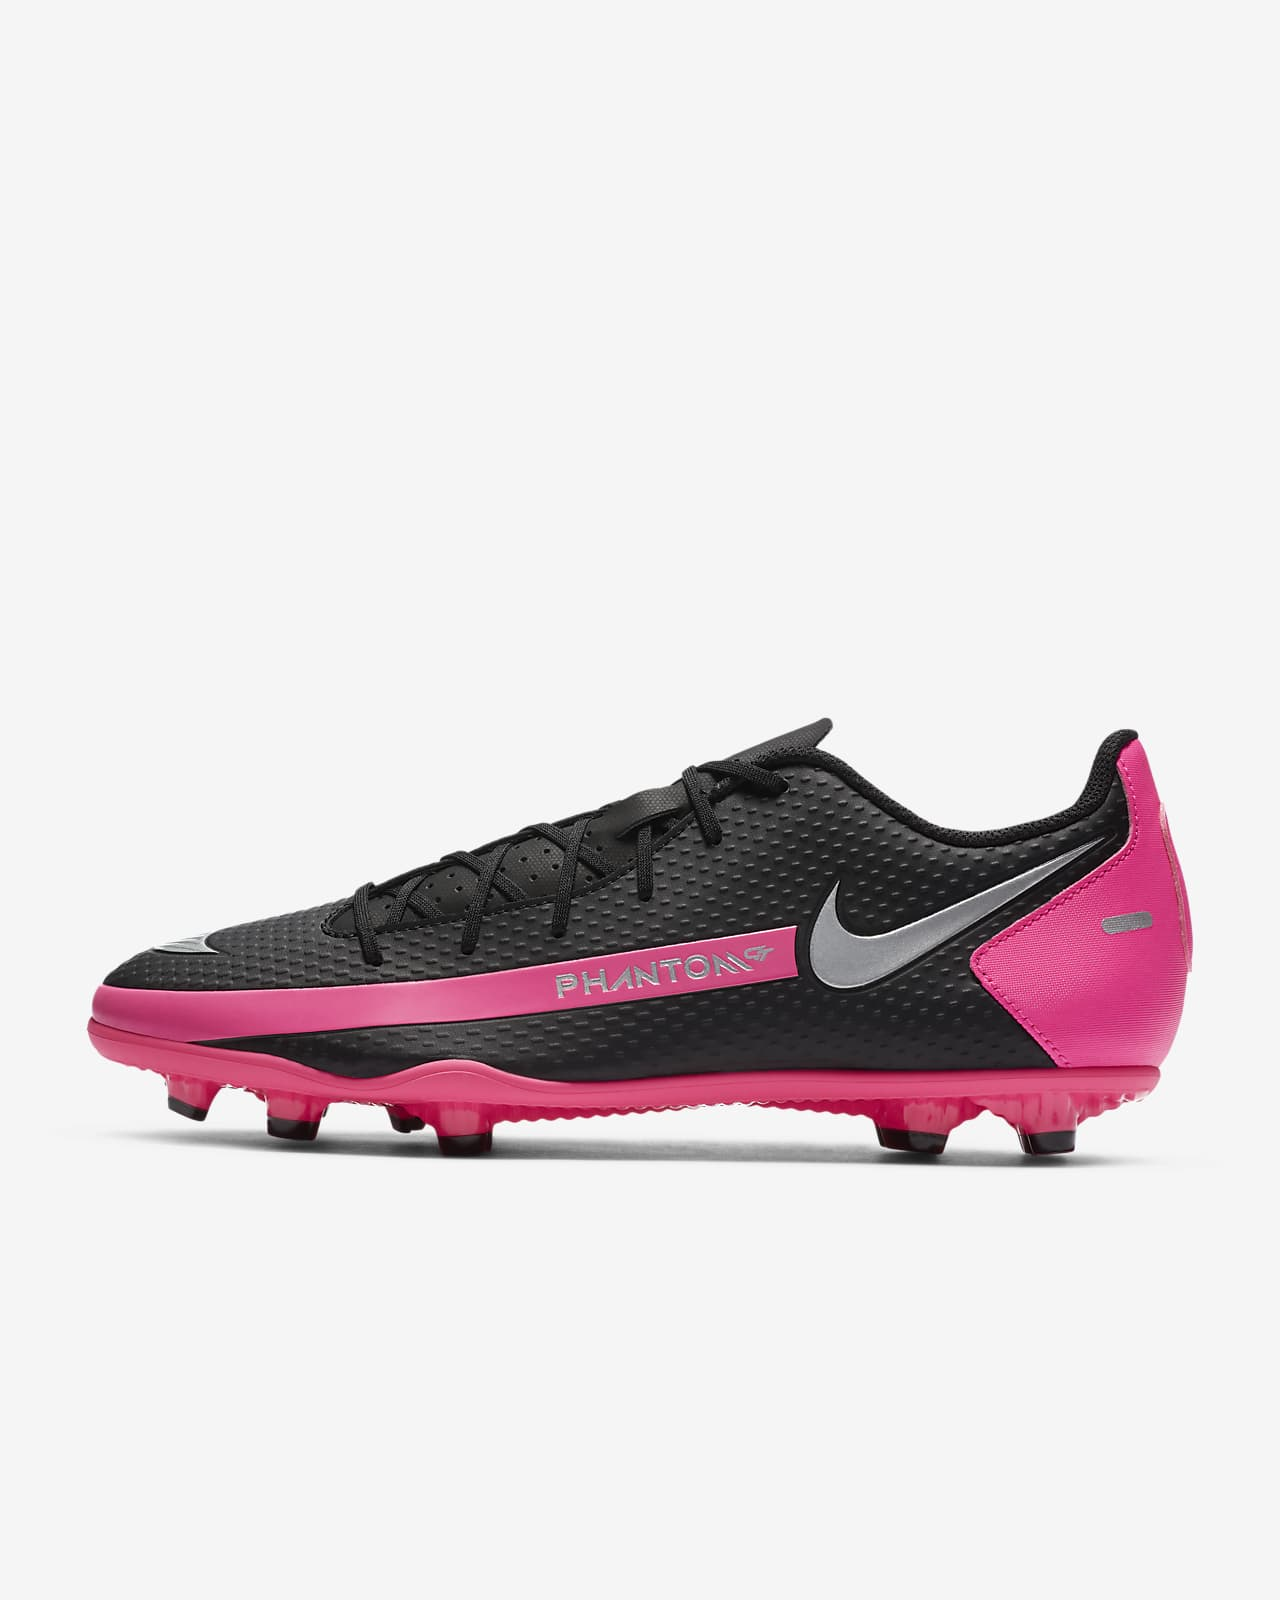 Nike Phantom GT Club MG Multi-Ground Soccer Cleat